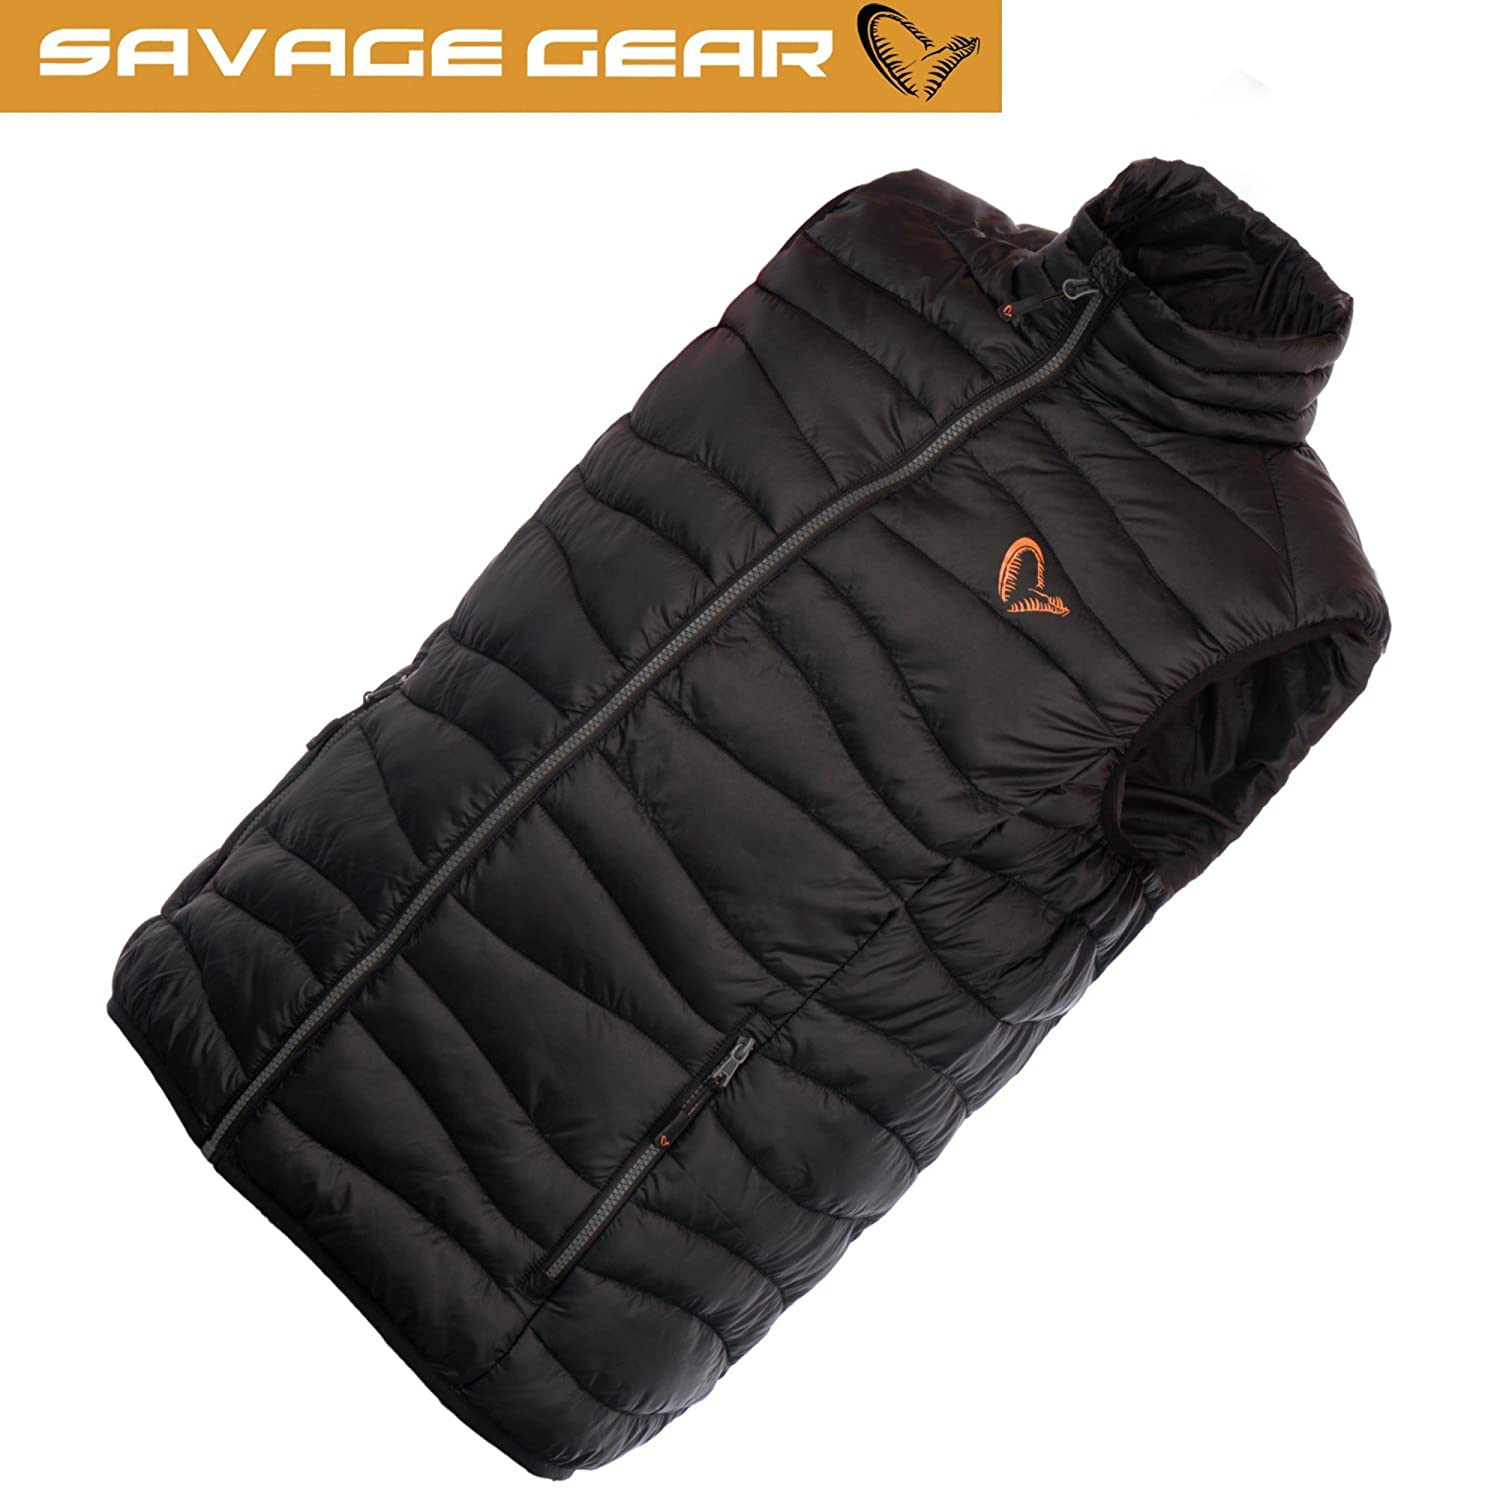 XXL SAVAGE GEAR simple SAUVAGE Lite gilet